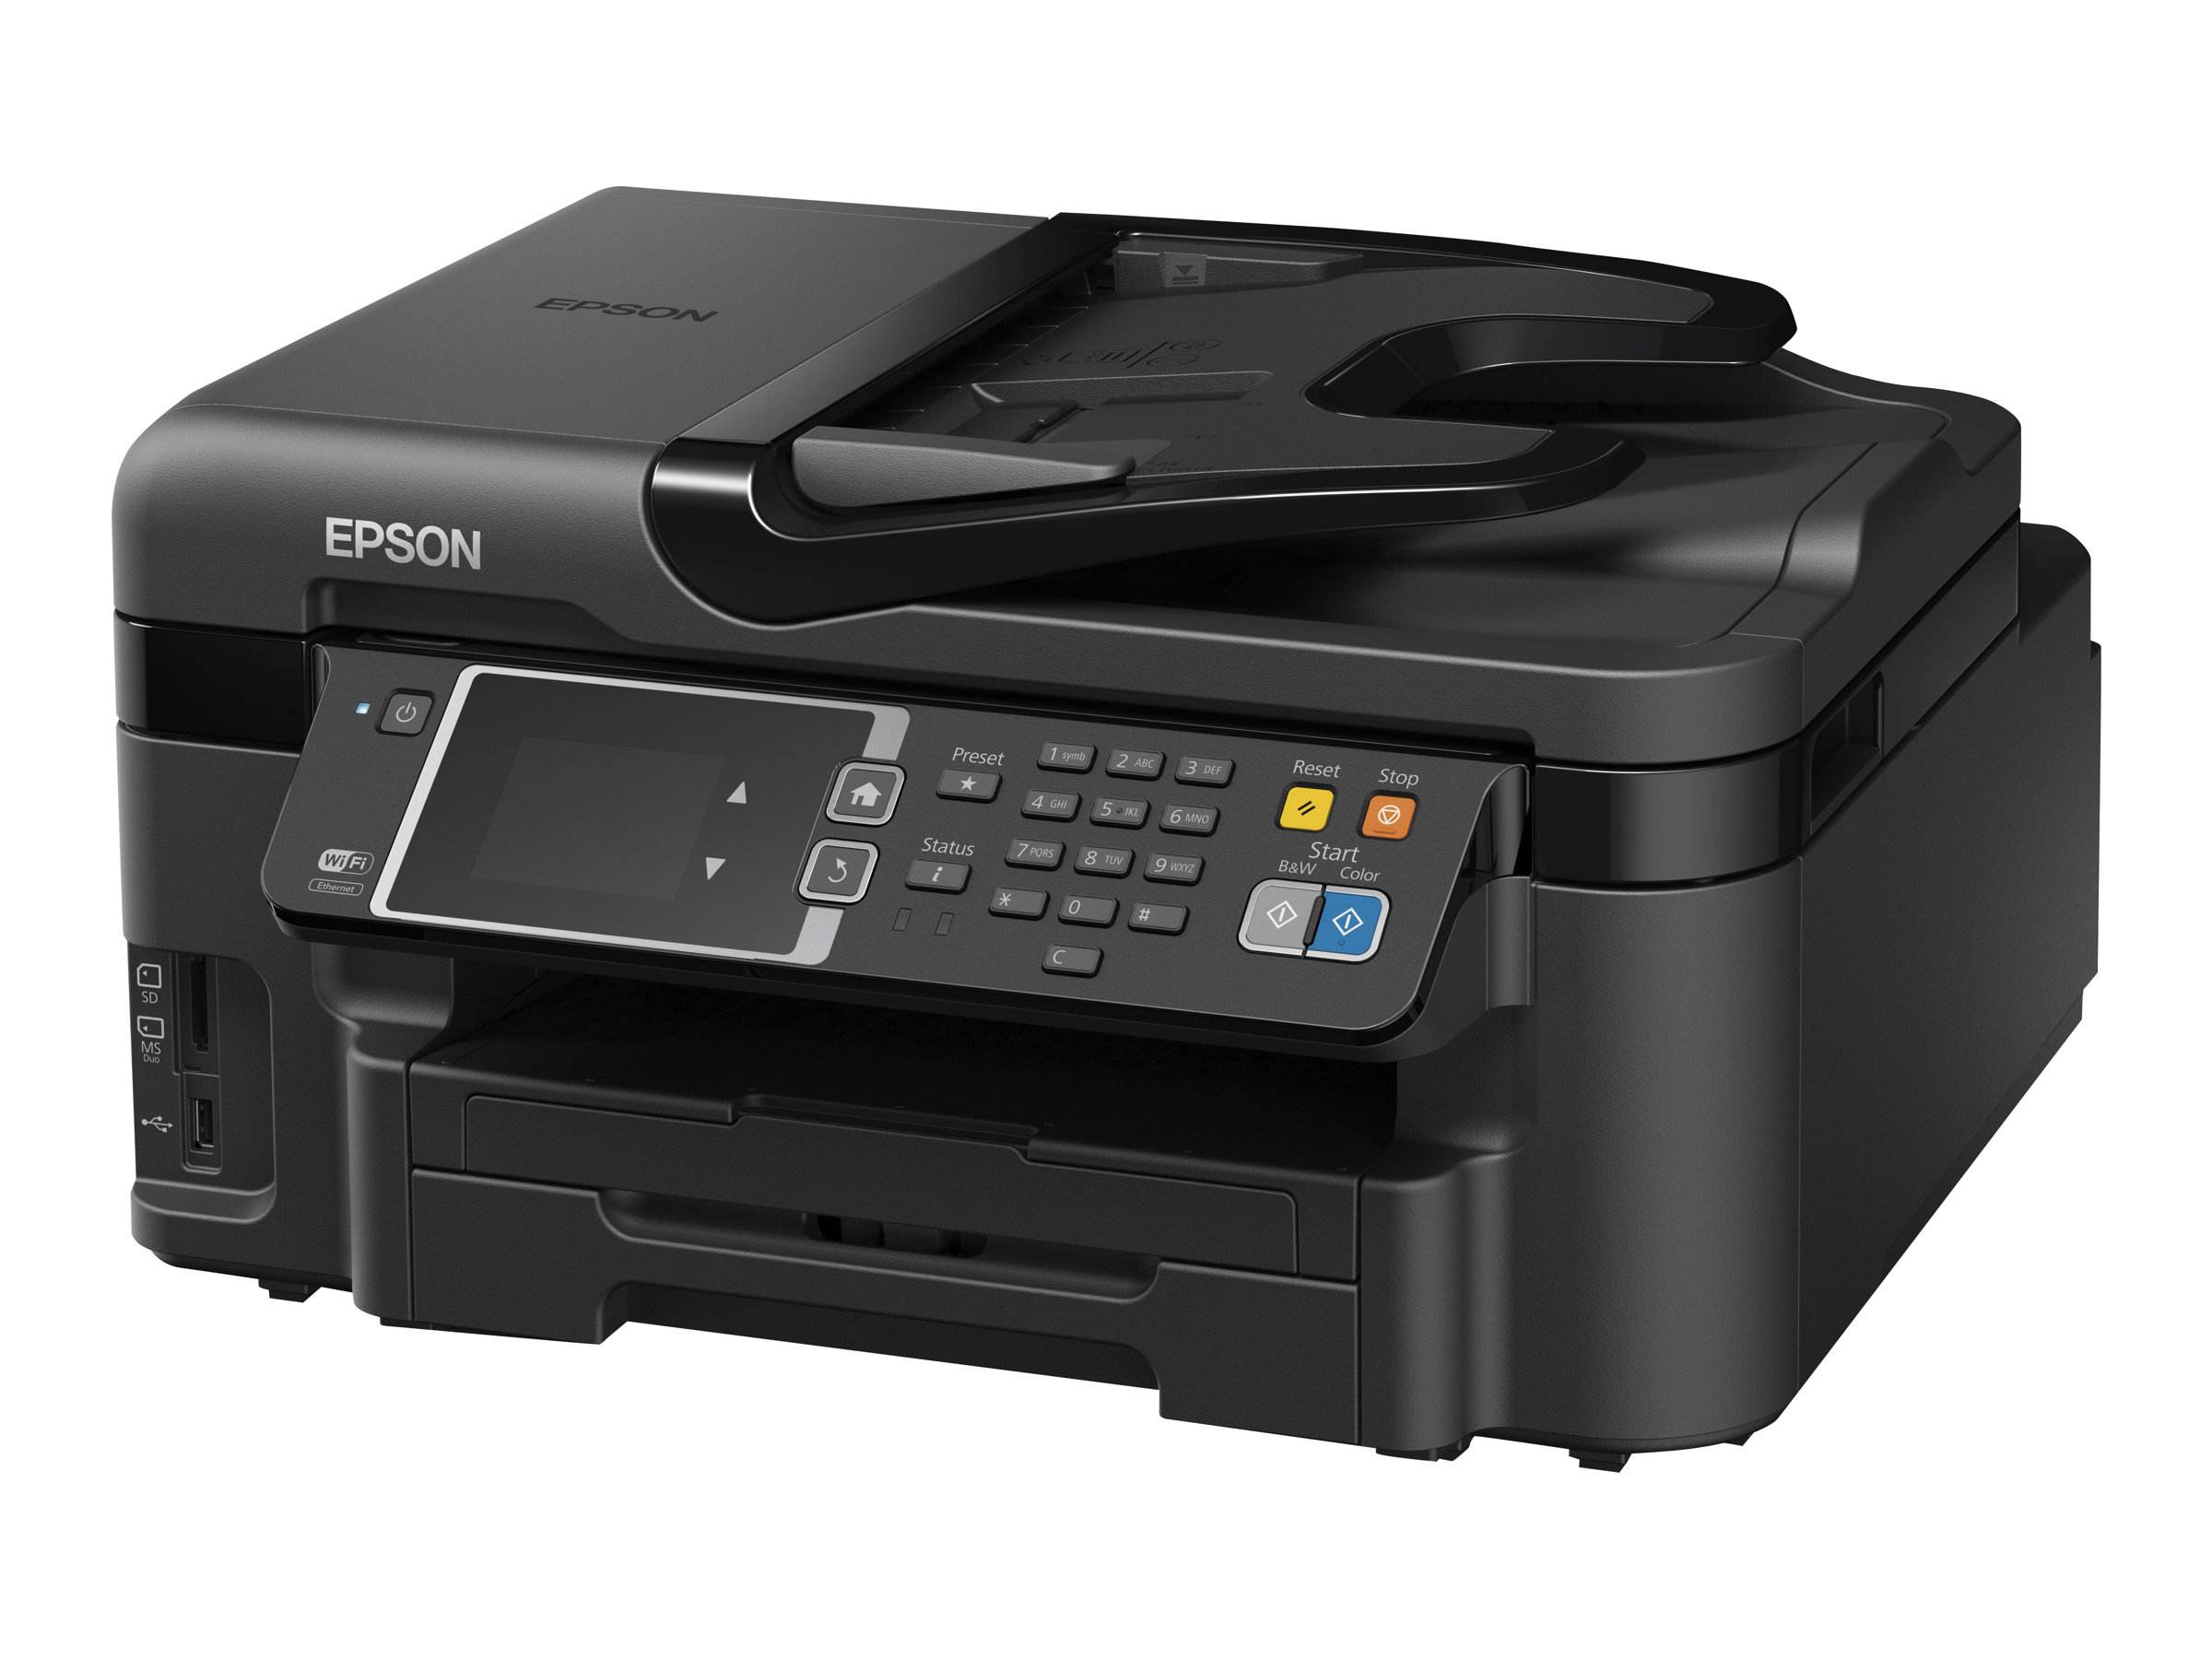 epson workforce wf 3620dwf imprimante multifonctions. Black Bedroom Furniture Sets. Home Design Ideas